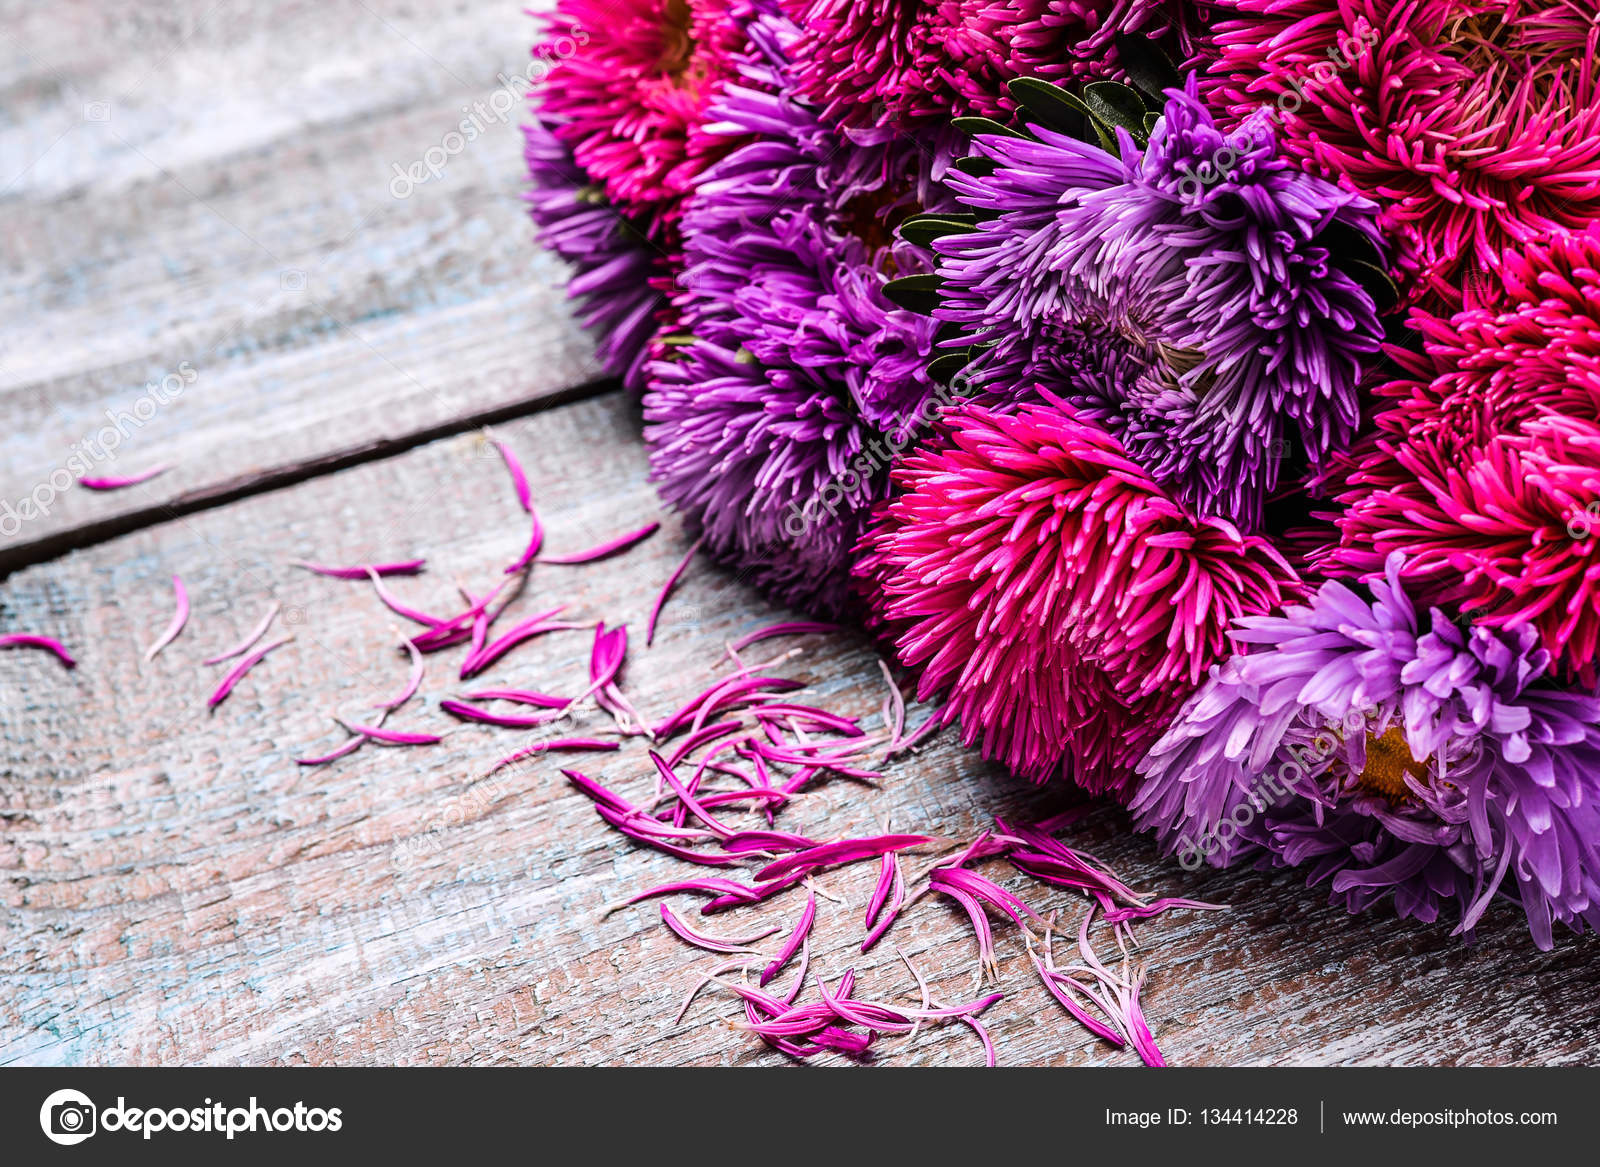 Aster flowers bouquet purple red pink white on a wooden background aster flowers bouquet purple red pink white on a wooden background selective focus photo by nataliiagl izmirmasajfo